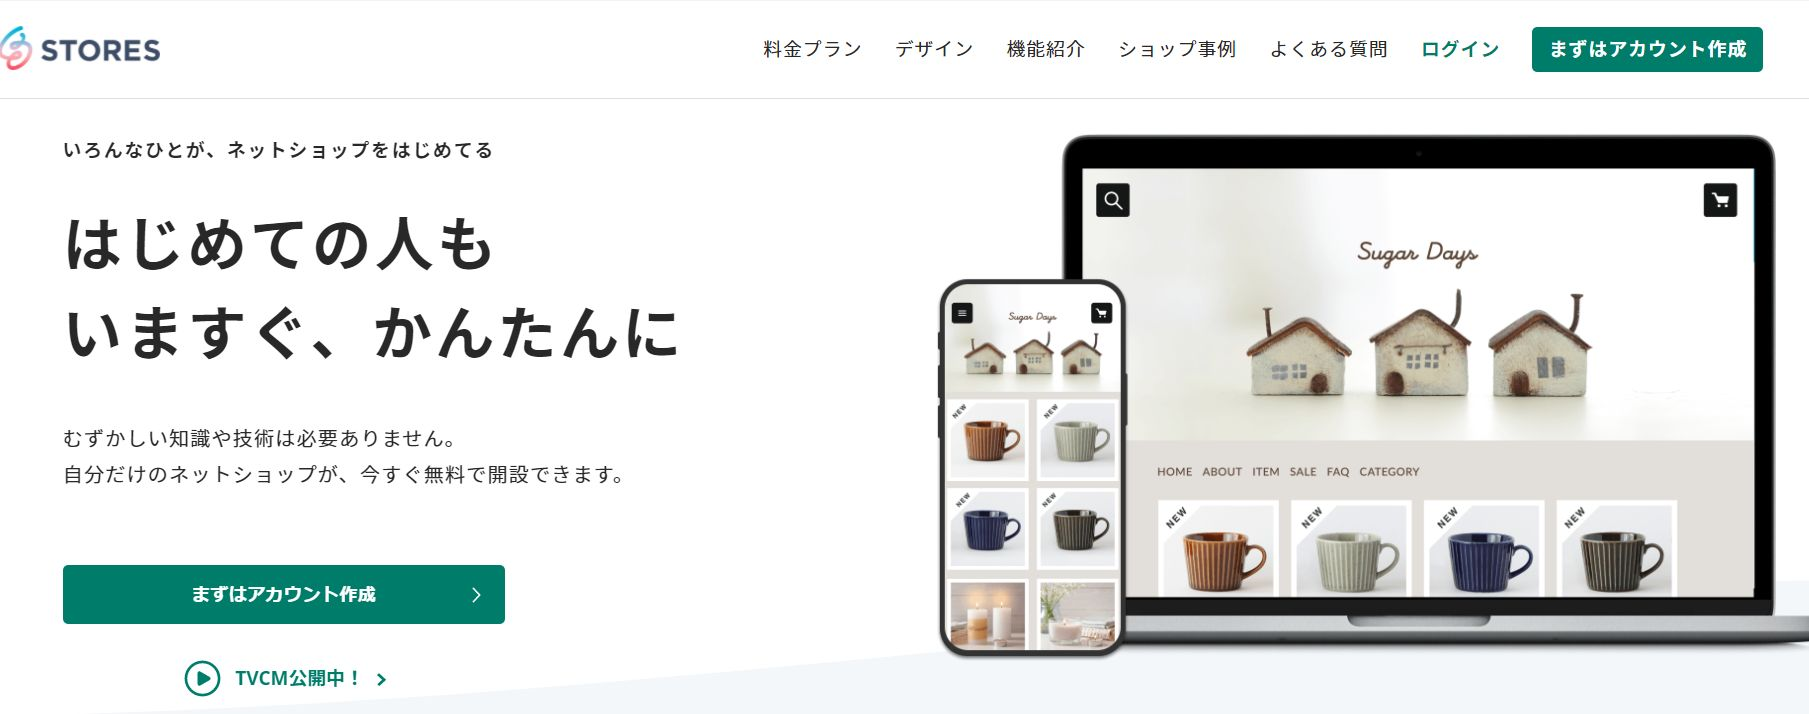 STORES公式ページ